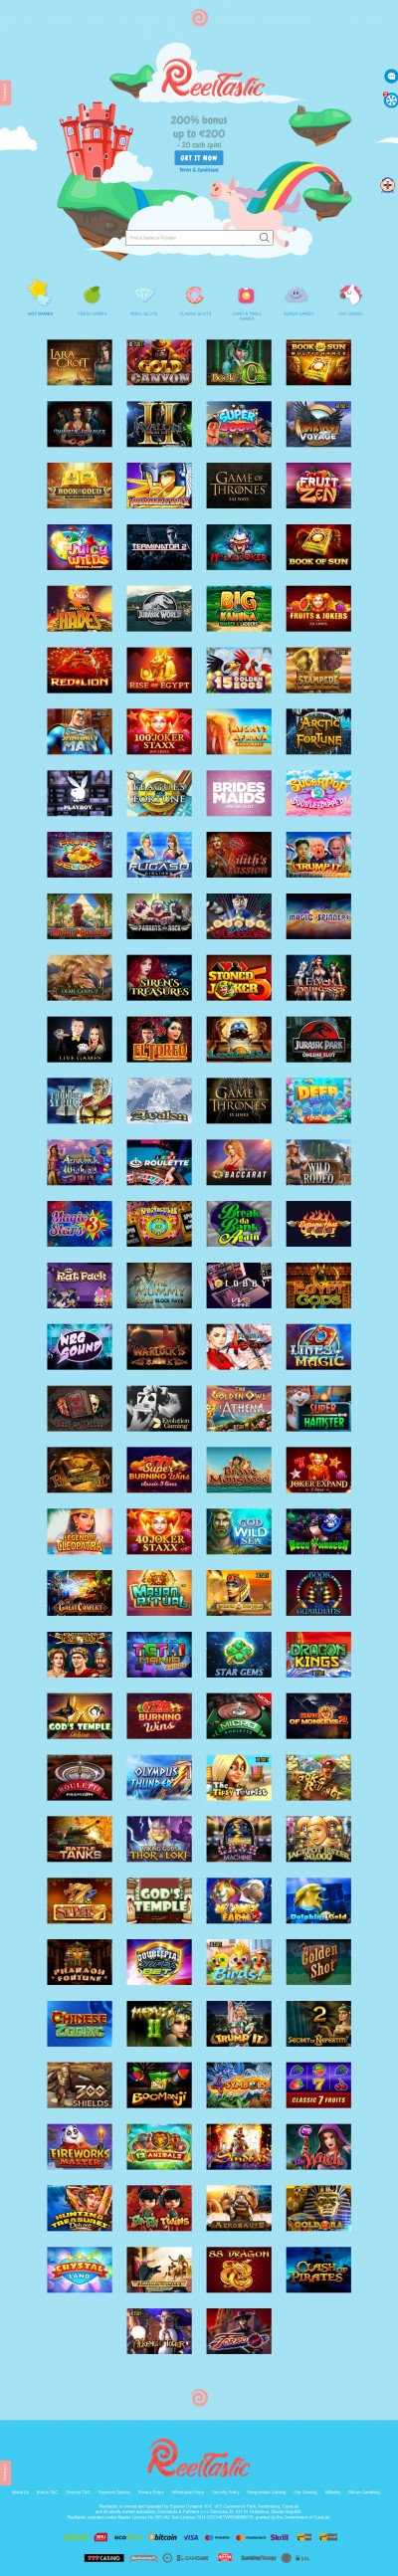 ReelTastic Casino Screenshot